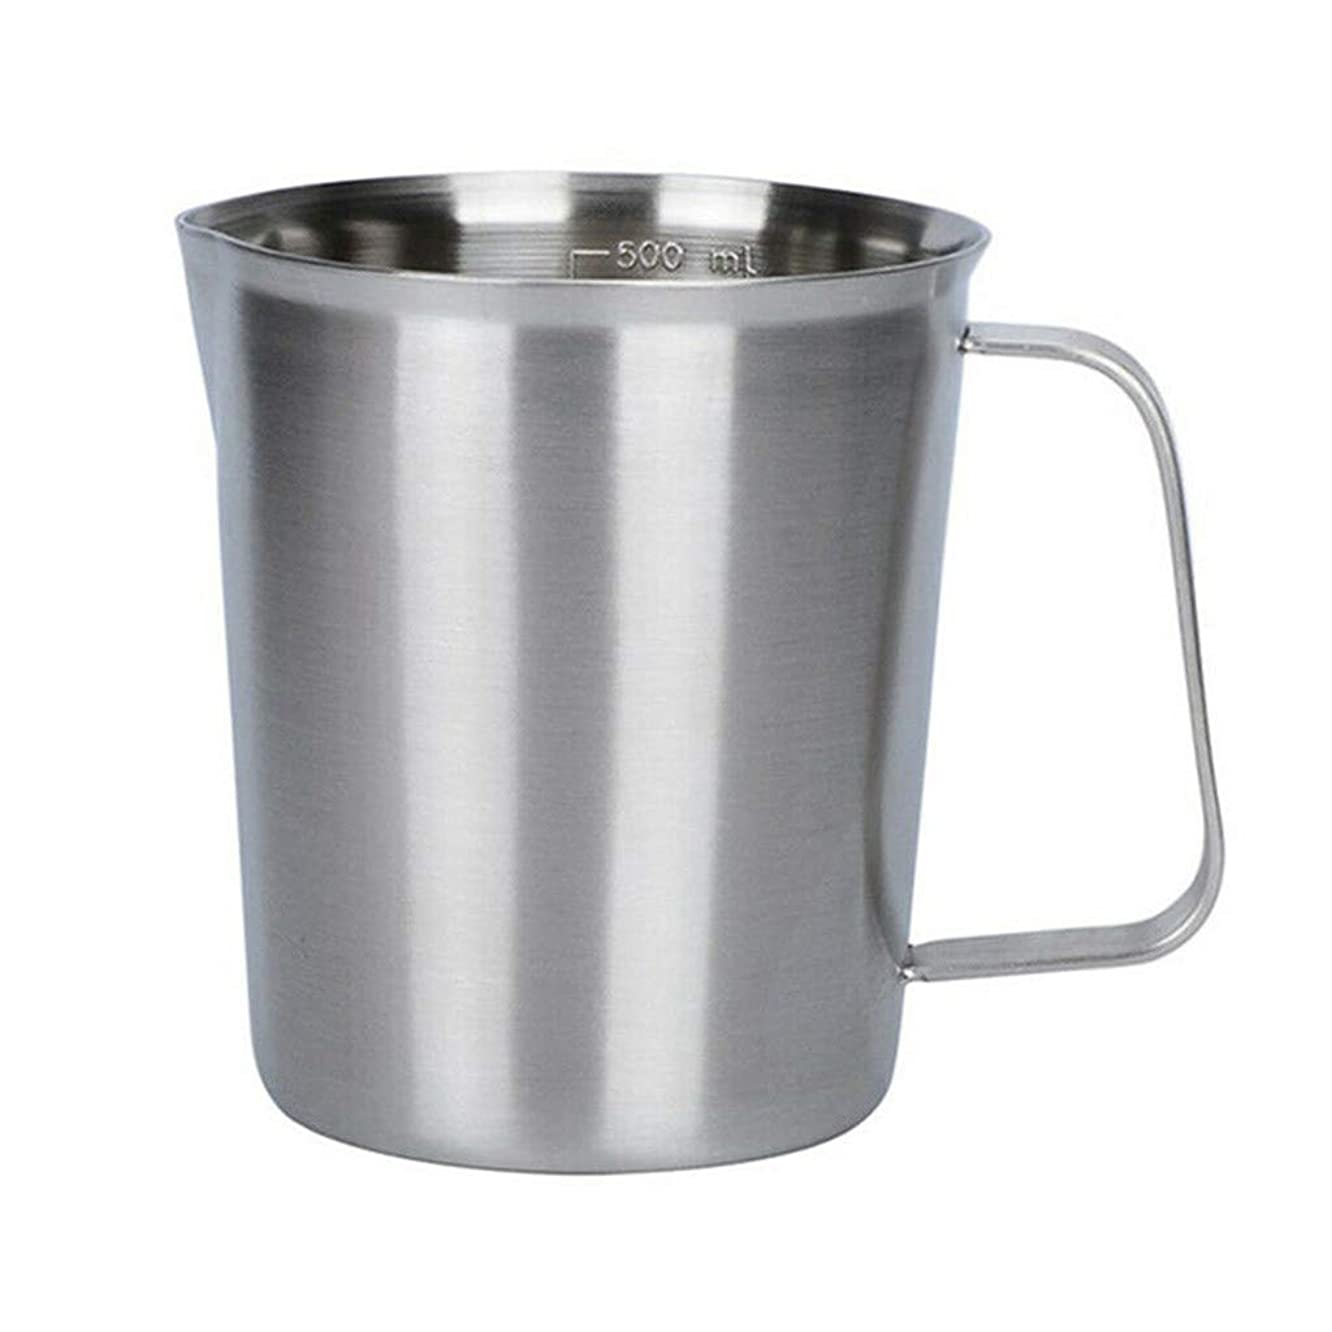 ?? Orcbee ?? _Measurement 304 Stainless Steel Milk Frothing Pitcher Cup for Latte Coffee Art